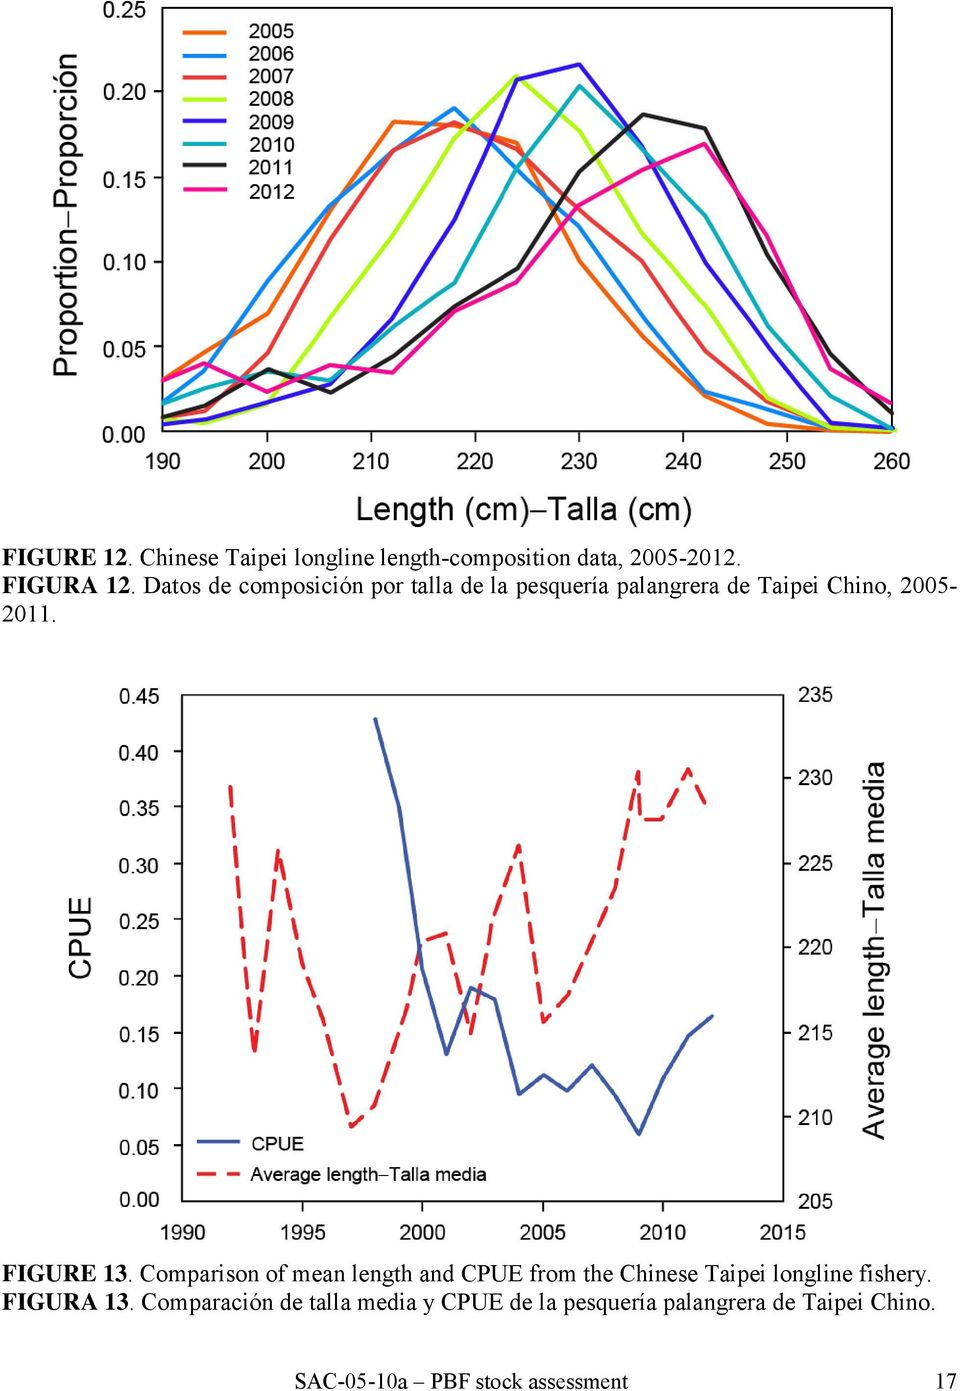 FIGURE 13. Comparison of mean length and CPUE from the Chinese Taipei longline fishery.